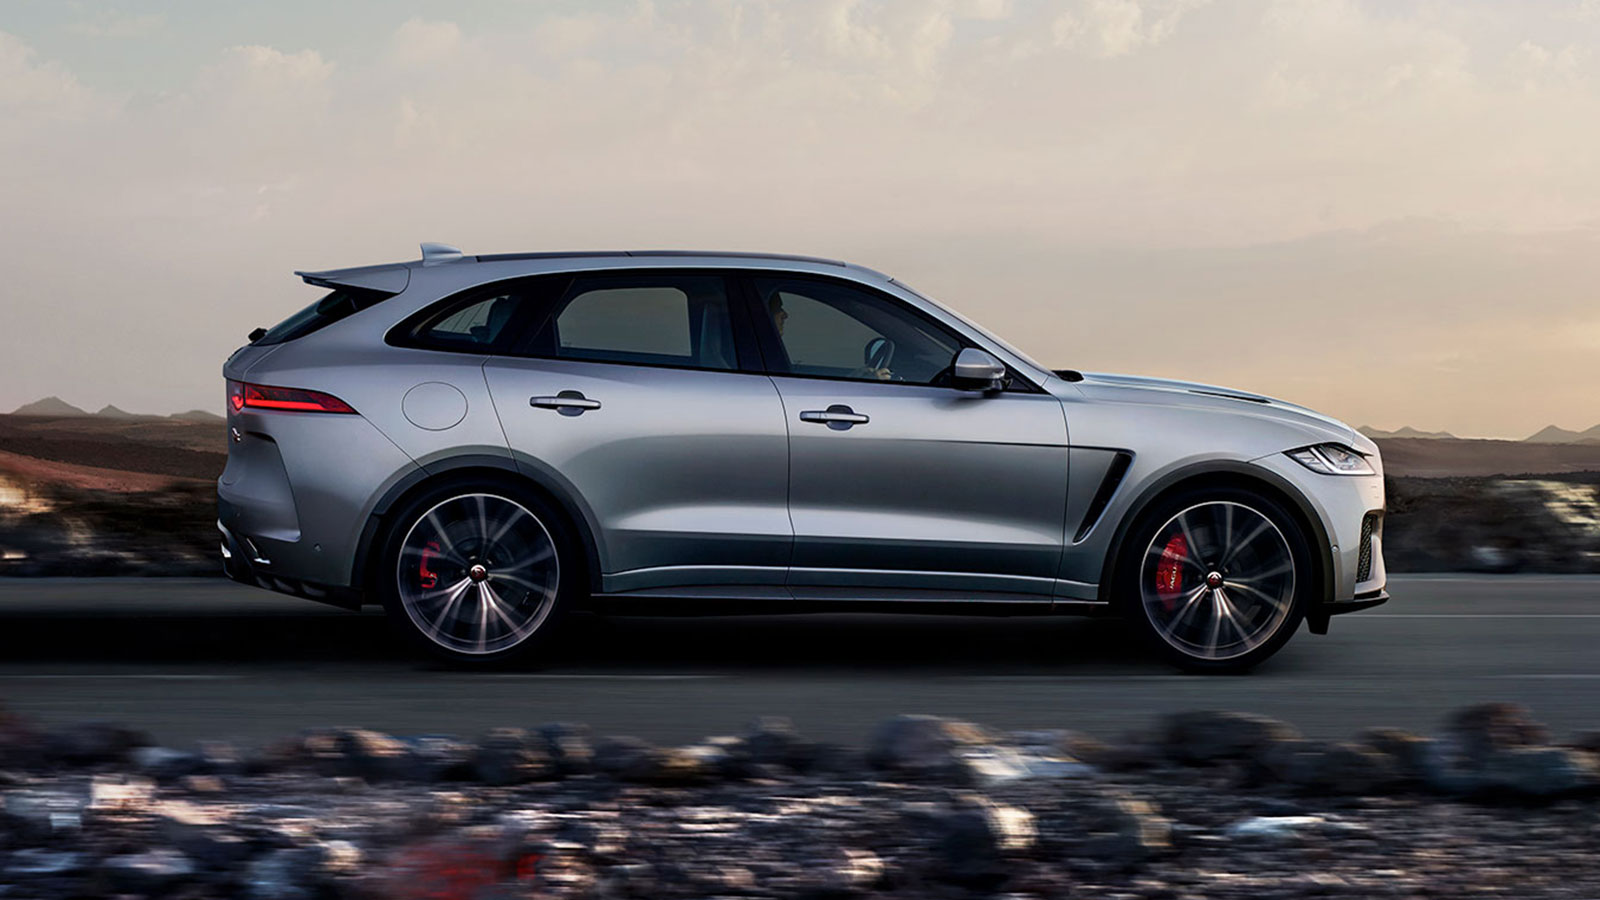 Side View of Silver Jaguar F-Pace.